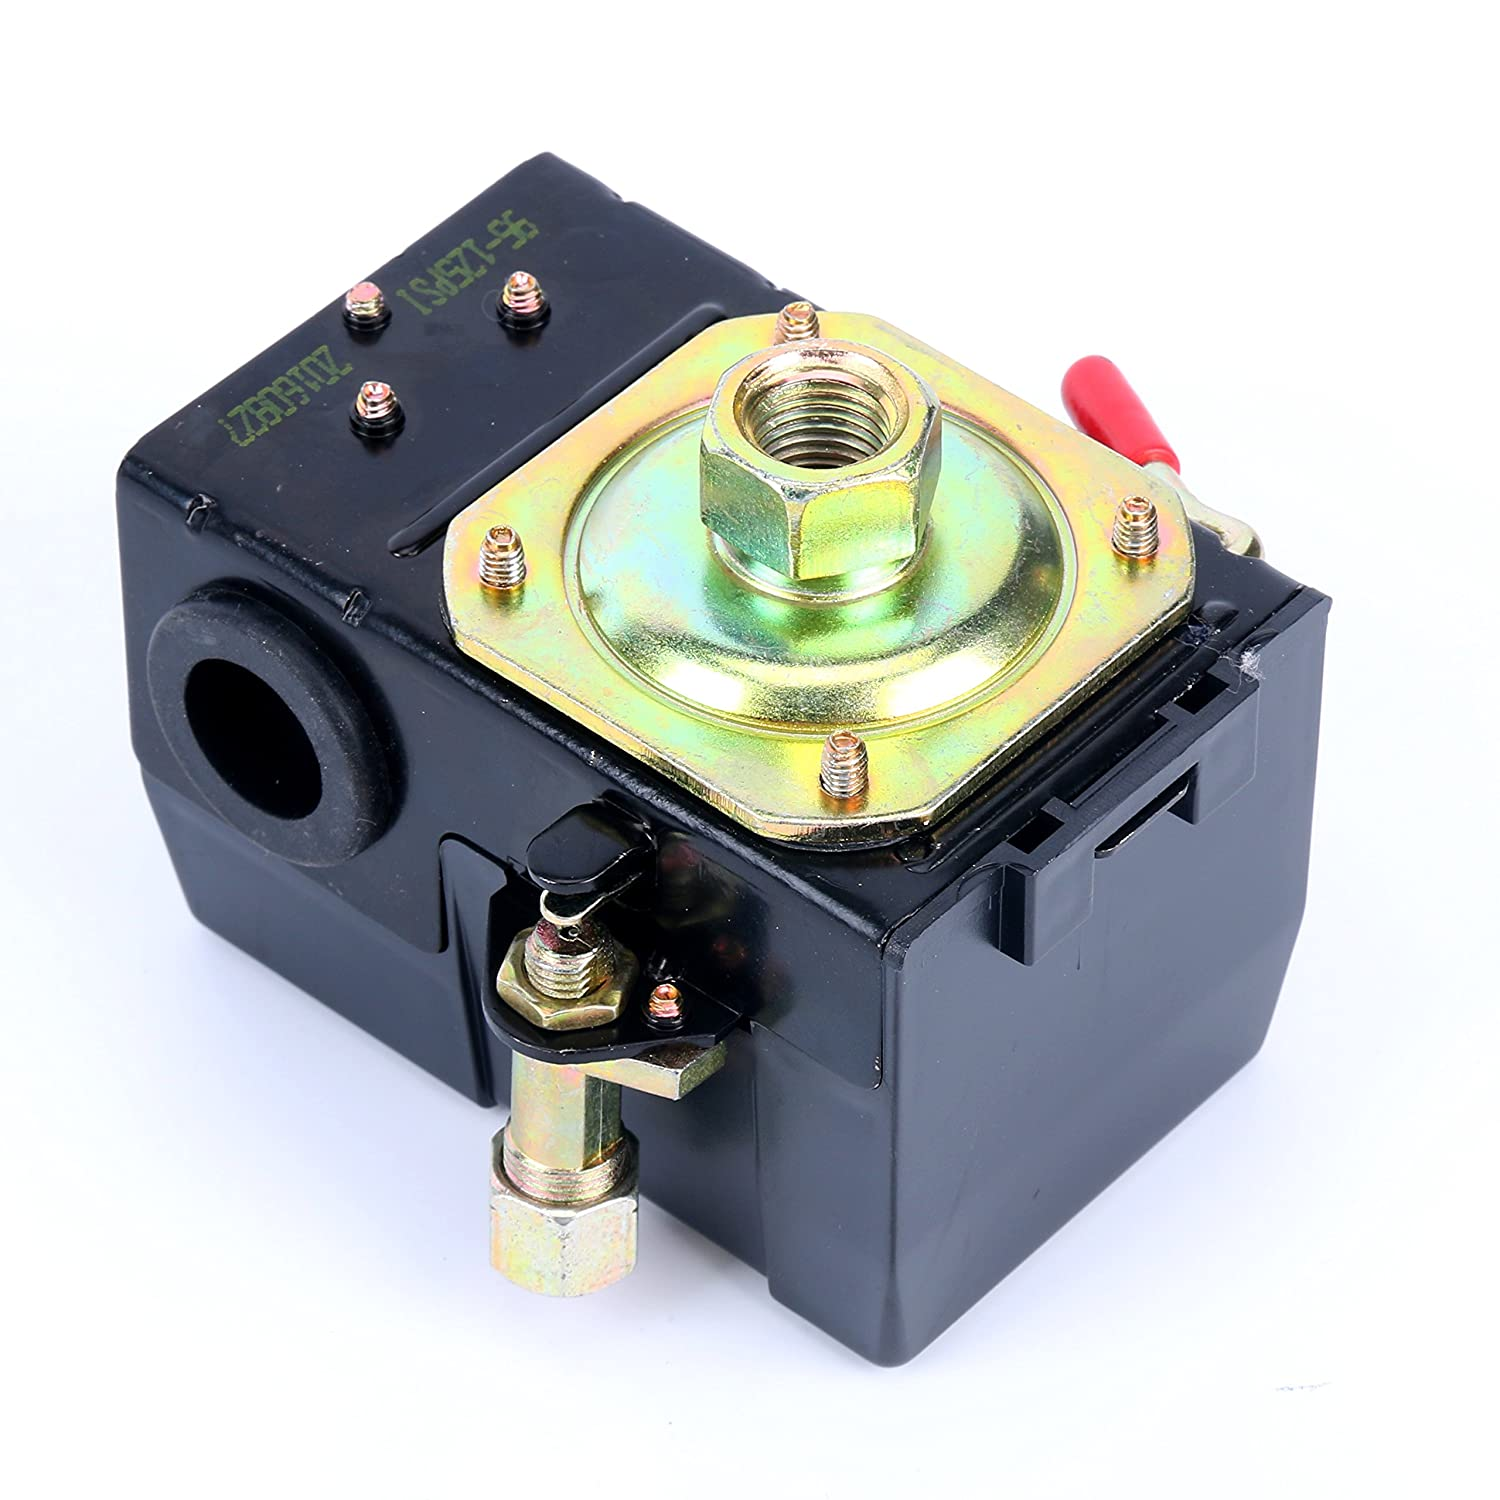 91o9igL6G1L._SL1500_ lefoo quality air compressor pressure switch control valve 95 125 furnas pressure switch diagram at gsmx.co